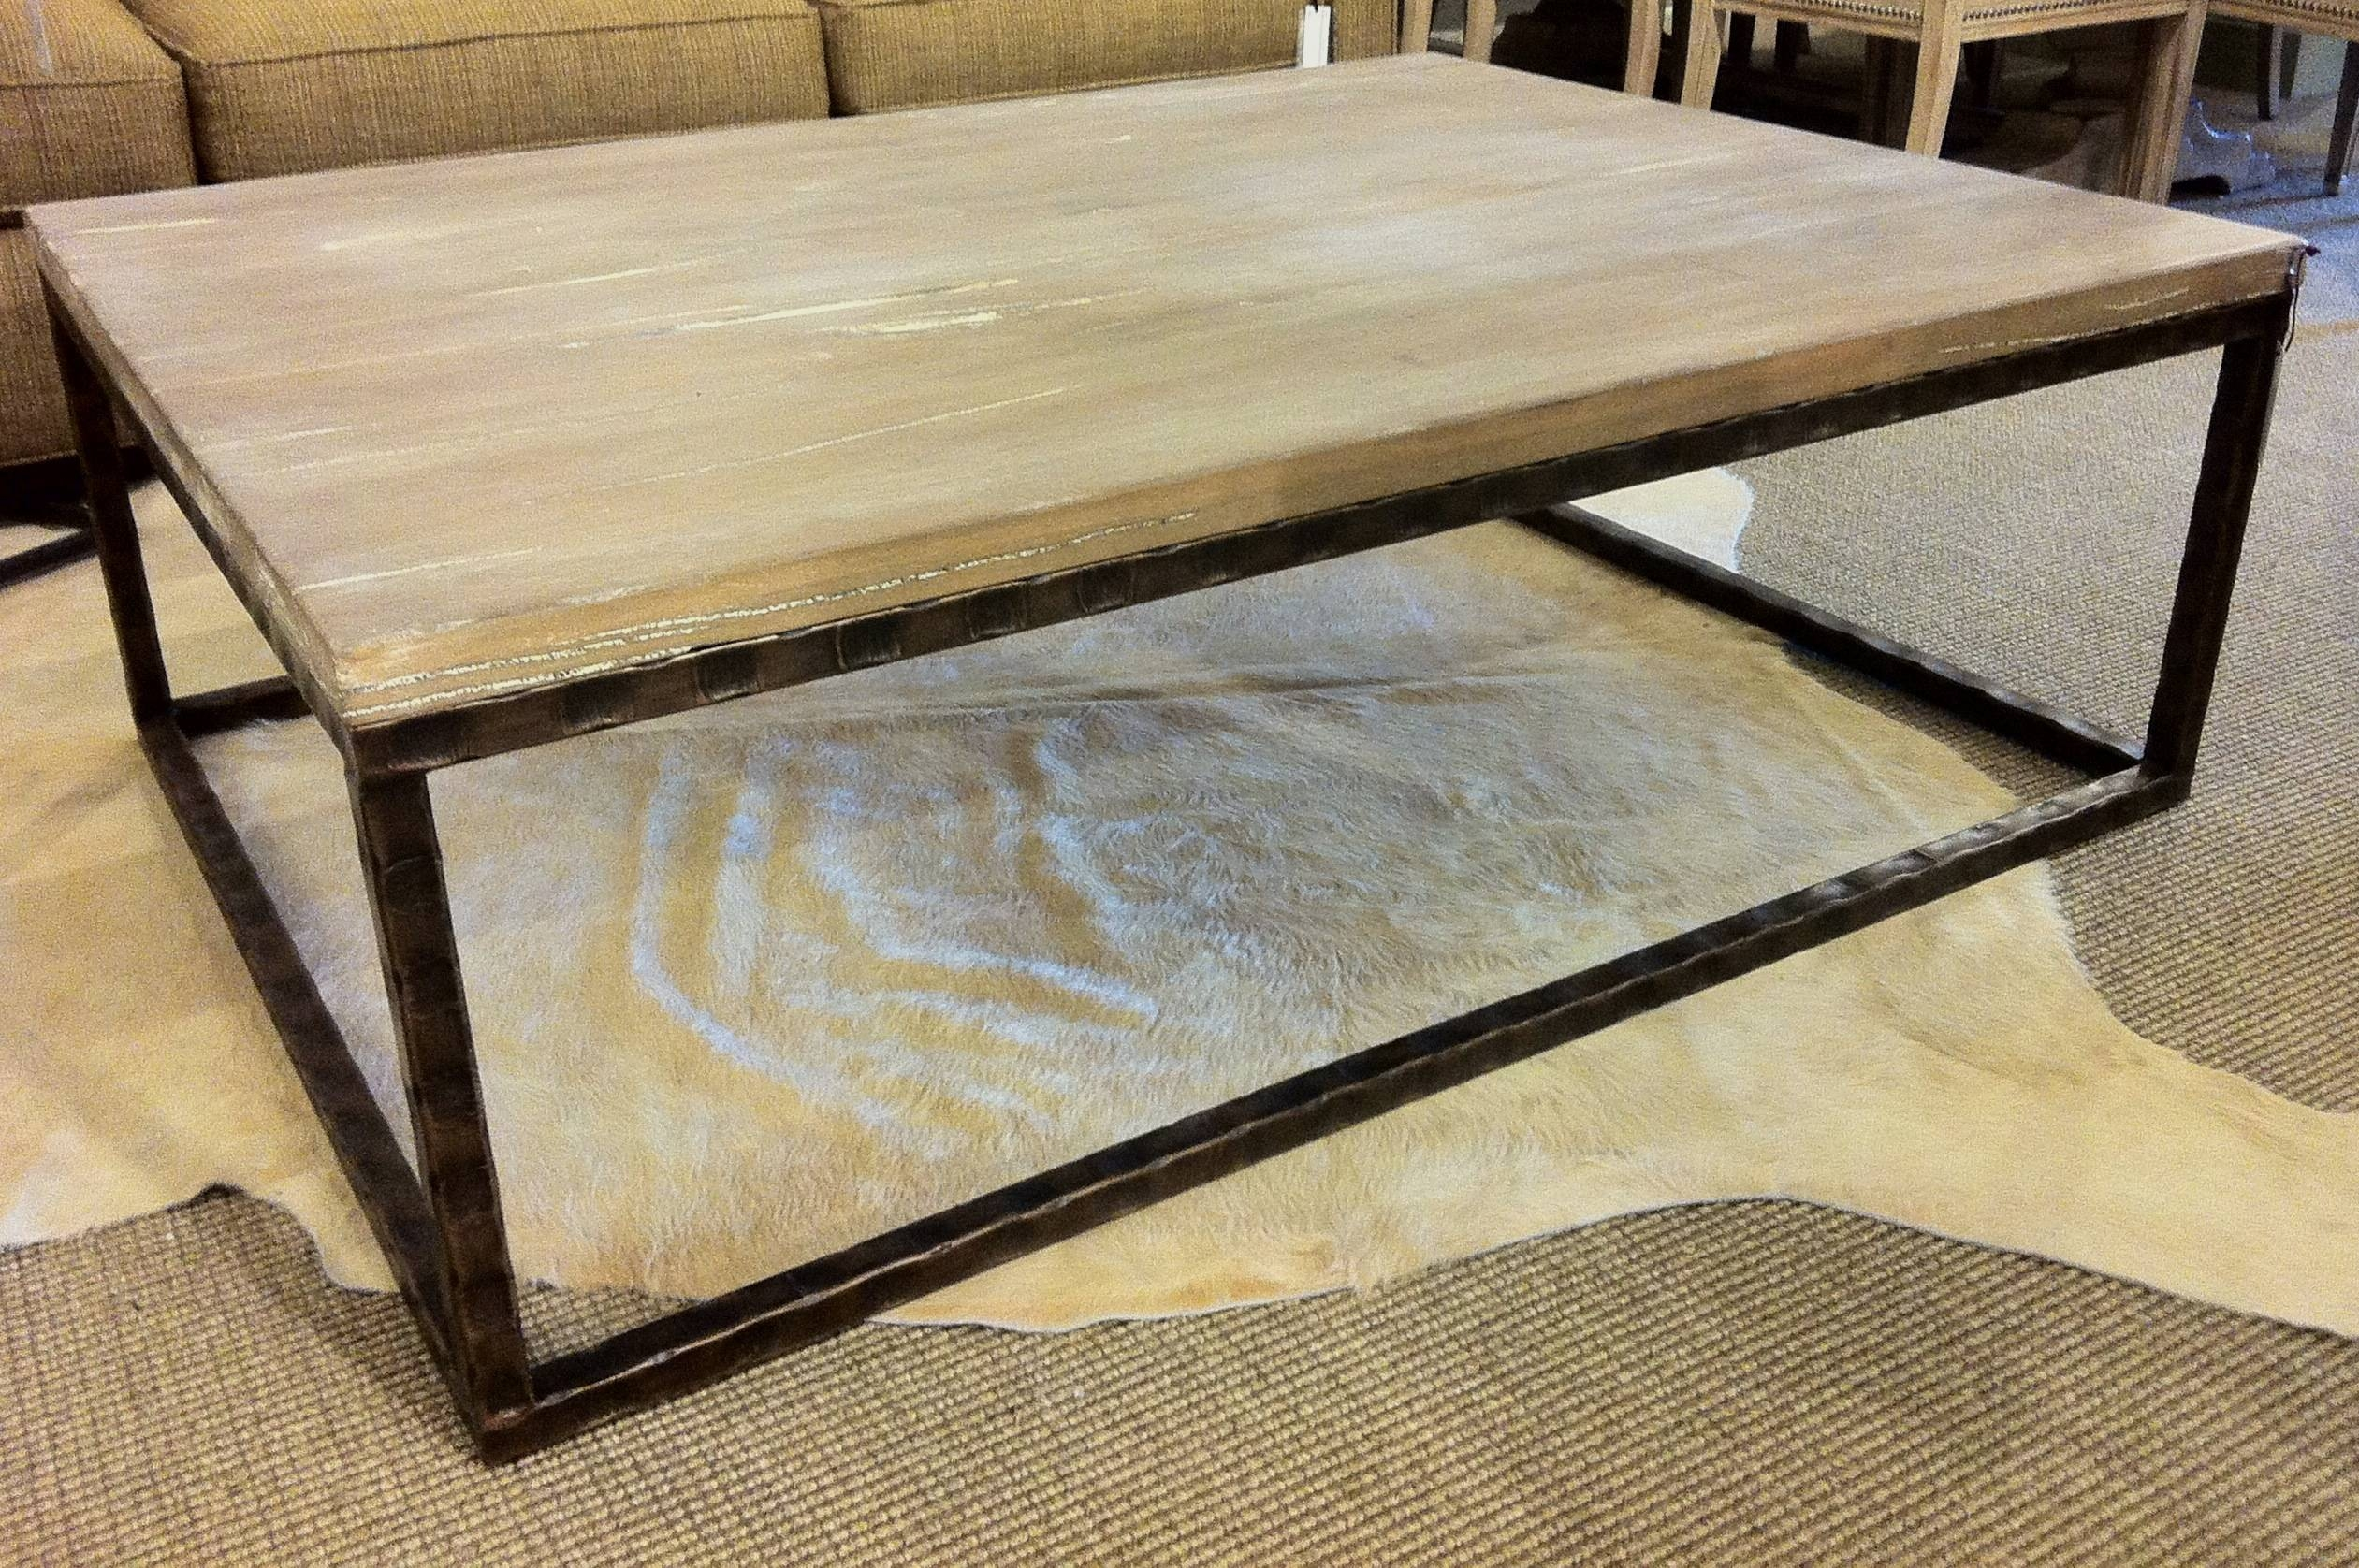 Coffee Tables Ideas: Strong Materials Coffee Table Metal Base Best regarding Large Wood Coffee Tables (Image 4 of 15)